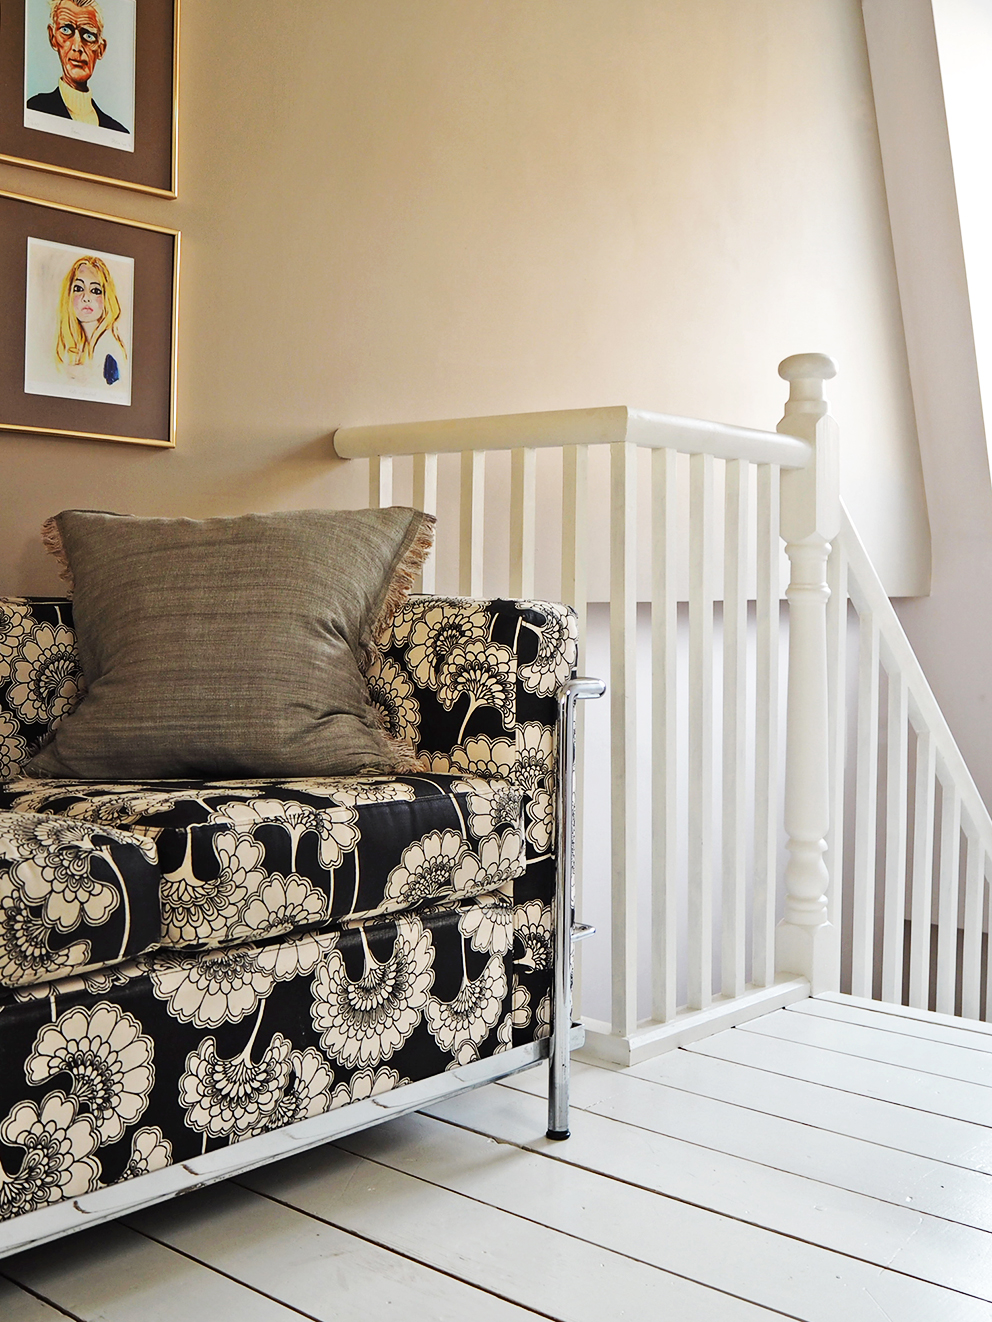 French For Pineapple Blog - Discovering Sanderson Paint - Sofa on landing near stairs with gallery wall painted in Beech Grey